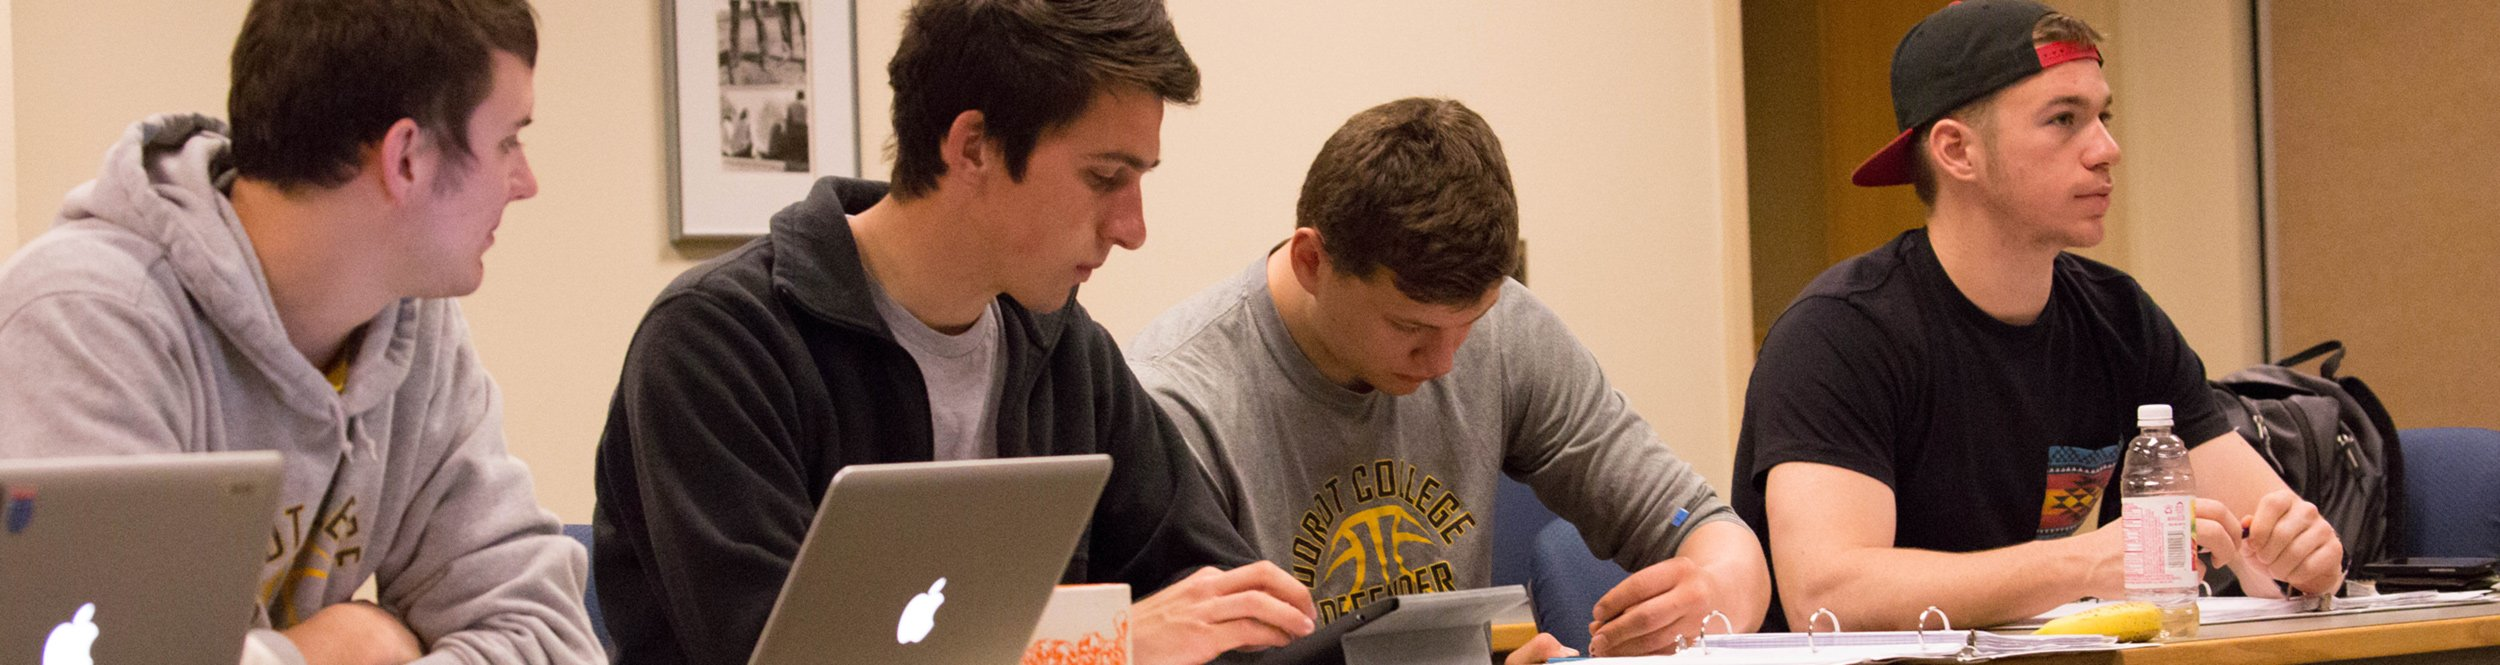 Students work on their laptops.